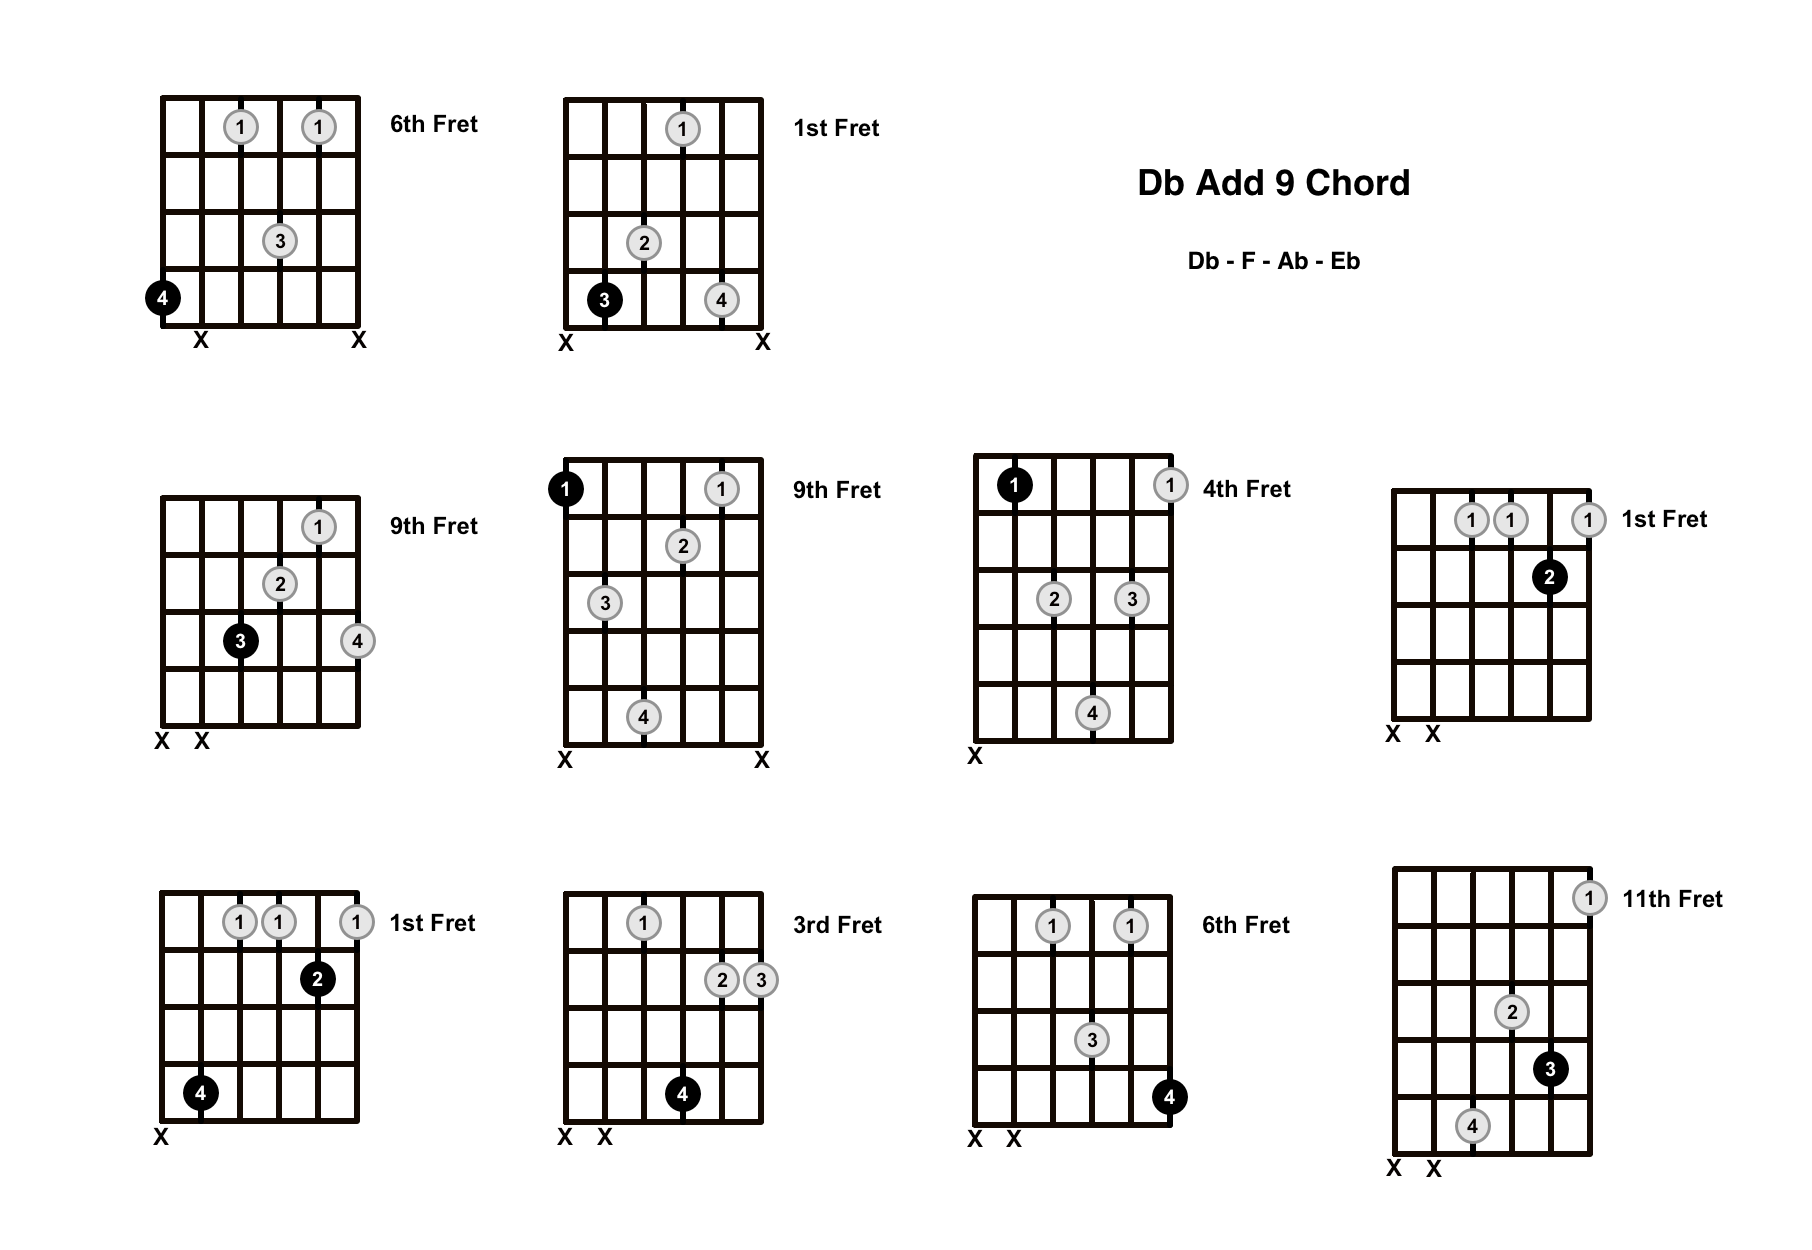 Db Add 9 Chord On The Guitar (D Flat Add 9/D Flat Add 2) – Diagrams, Finger Positions and Theory